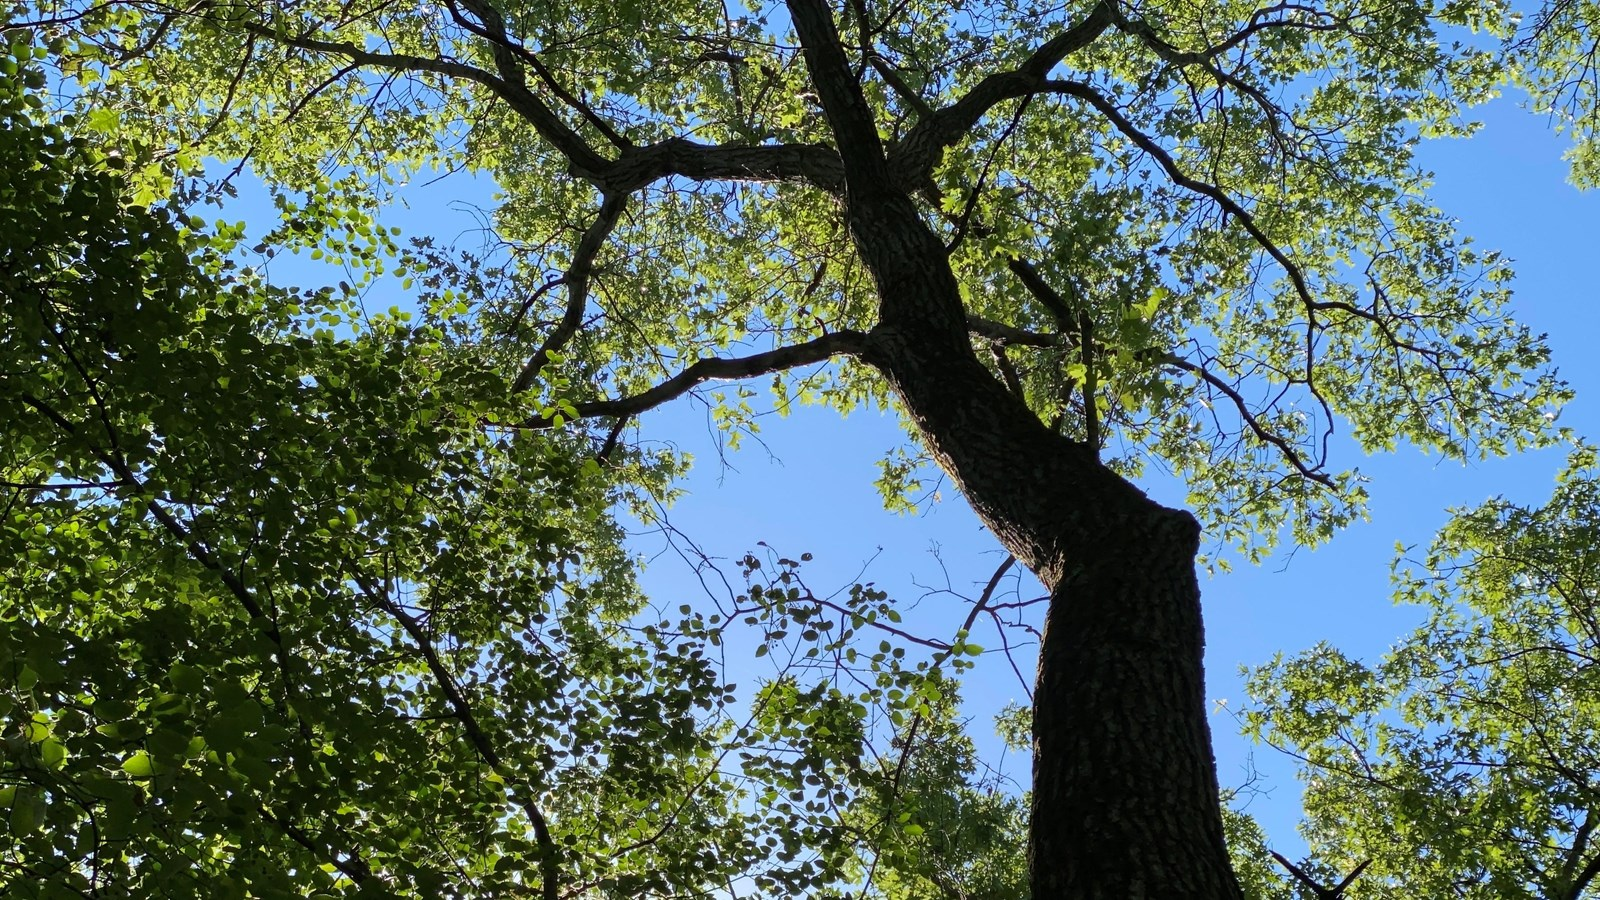 A tall oak tree reaches for the clear blue sky.  Green leaves provide shade to plants below.